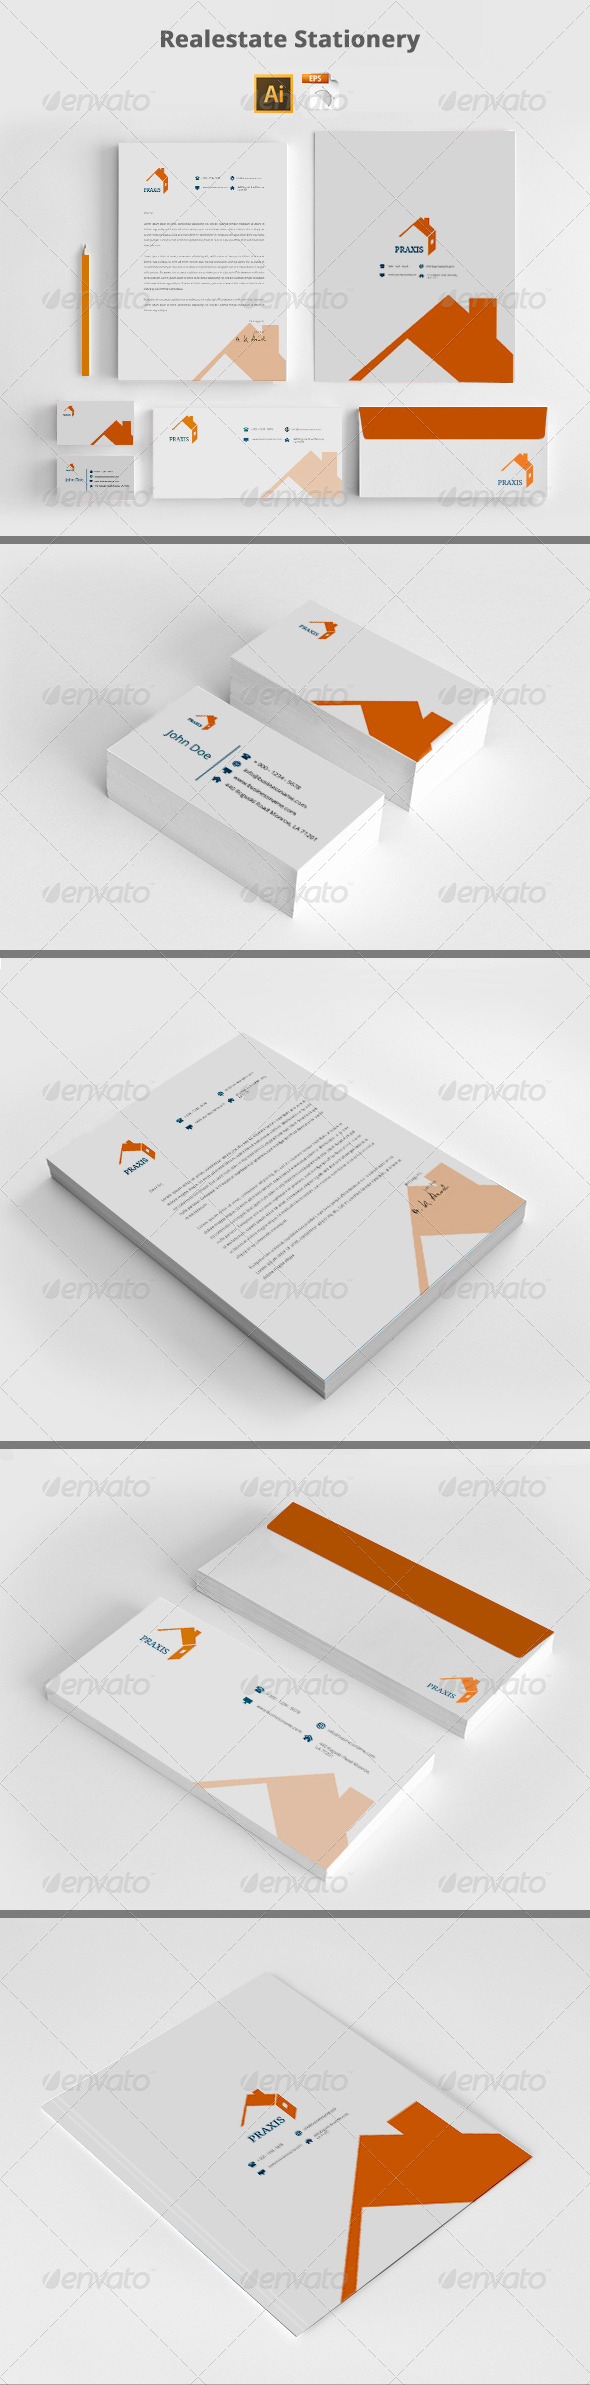 GraphicRiver Realestate Stationery Templates 8207533